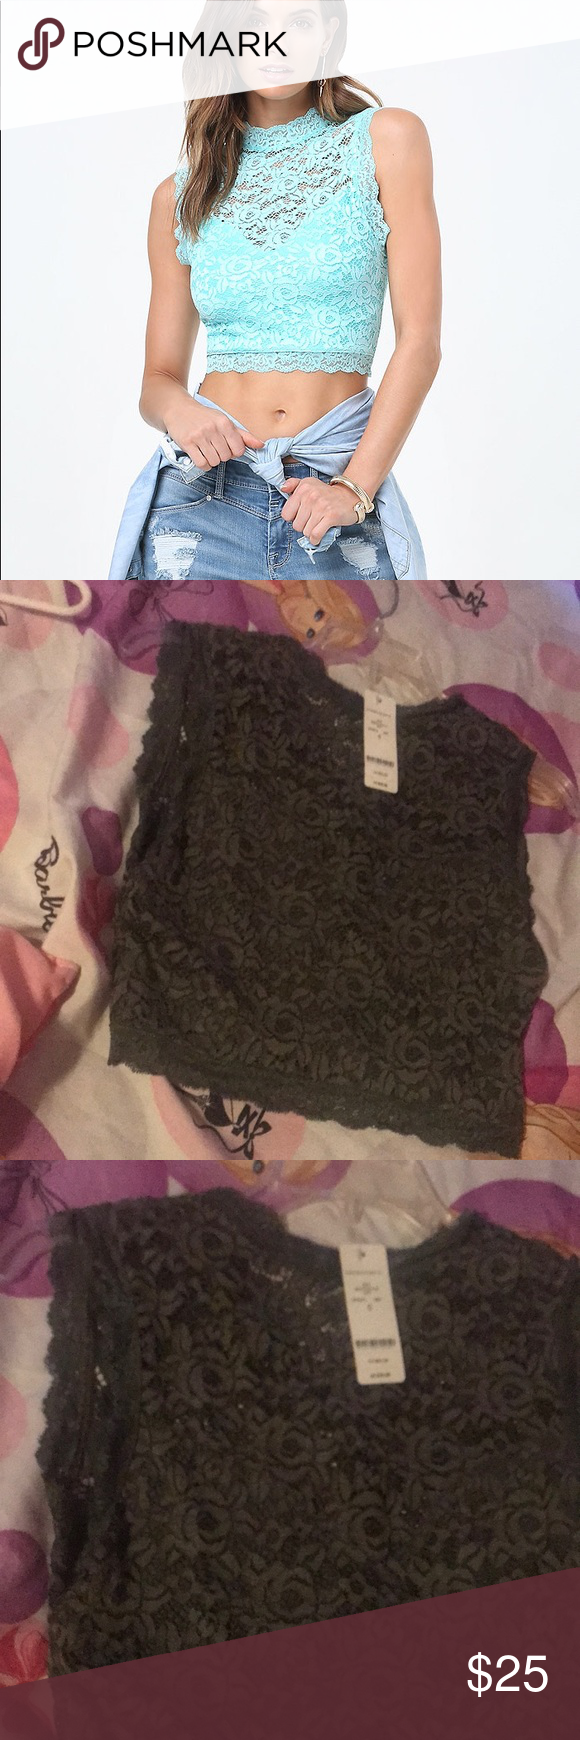 7a0506eab8df7 Bebe Olive green Sleeveless Lace Crop Top The color is Olive Green .Brand  new with tags. bebe Tops Crop Tops